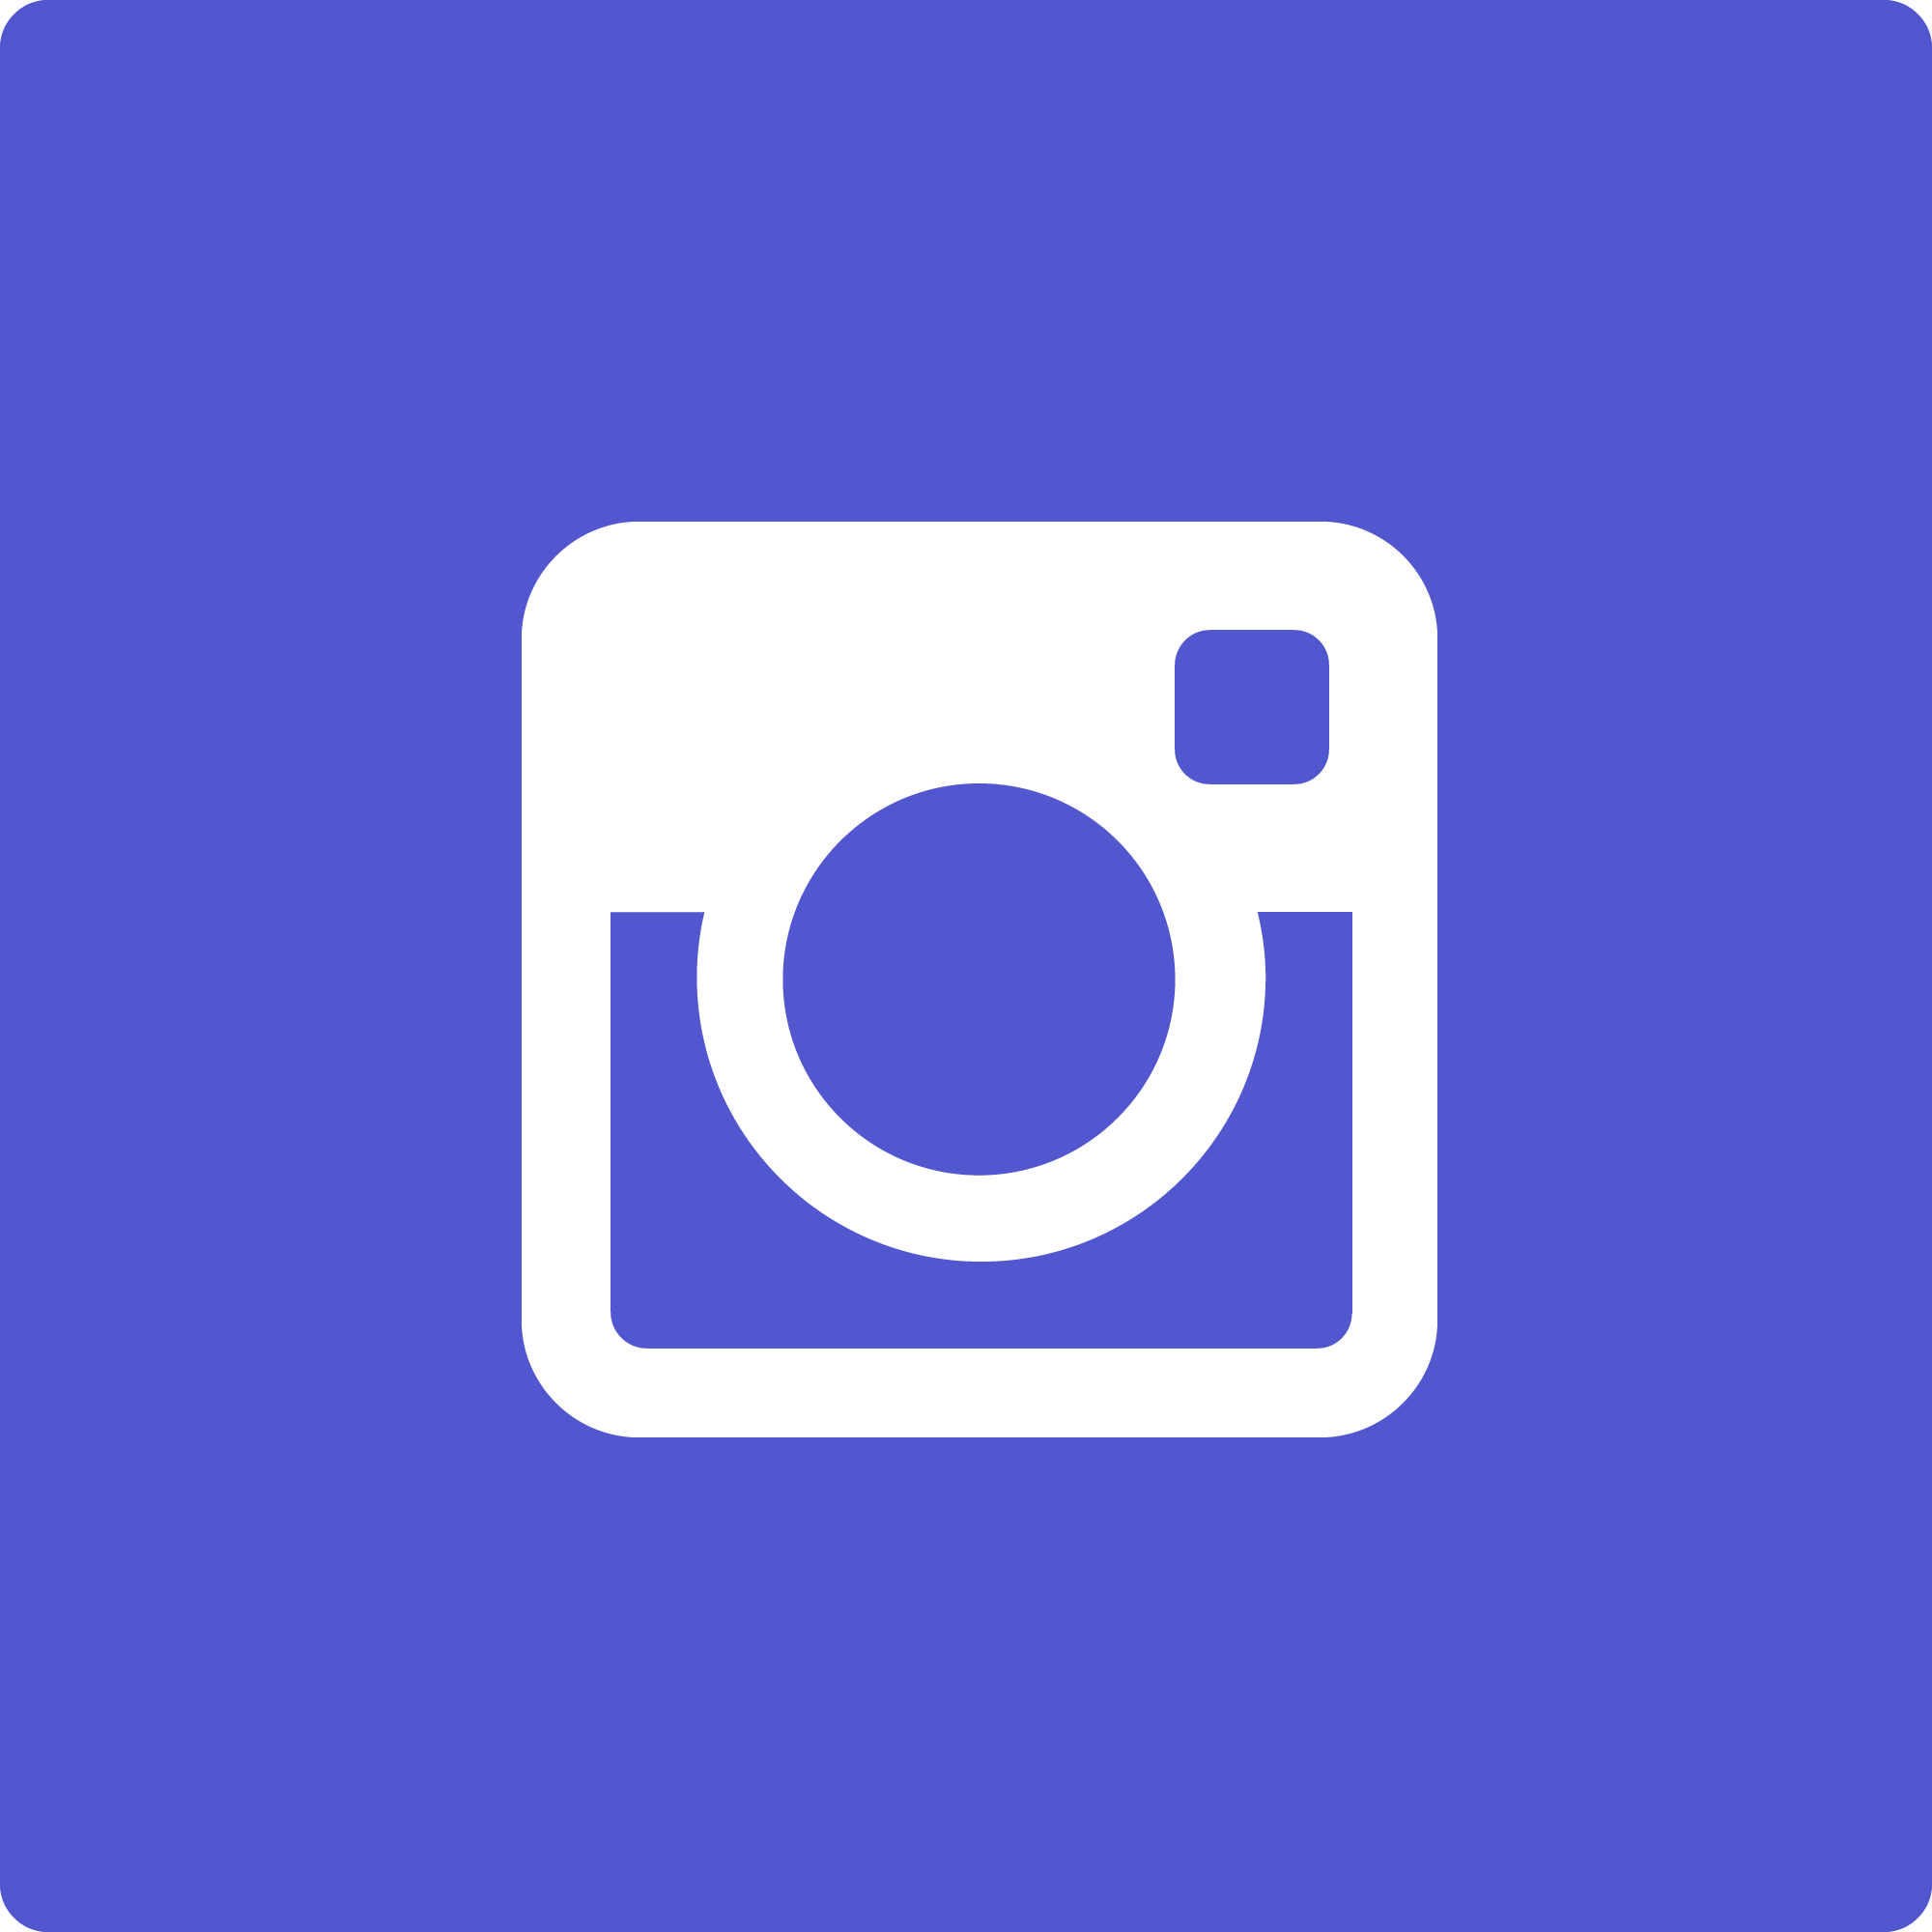 Instagram Icon@4x.png